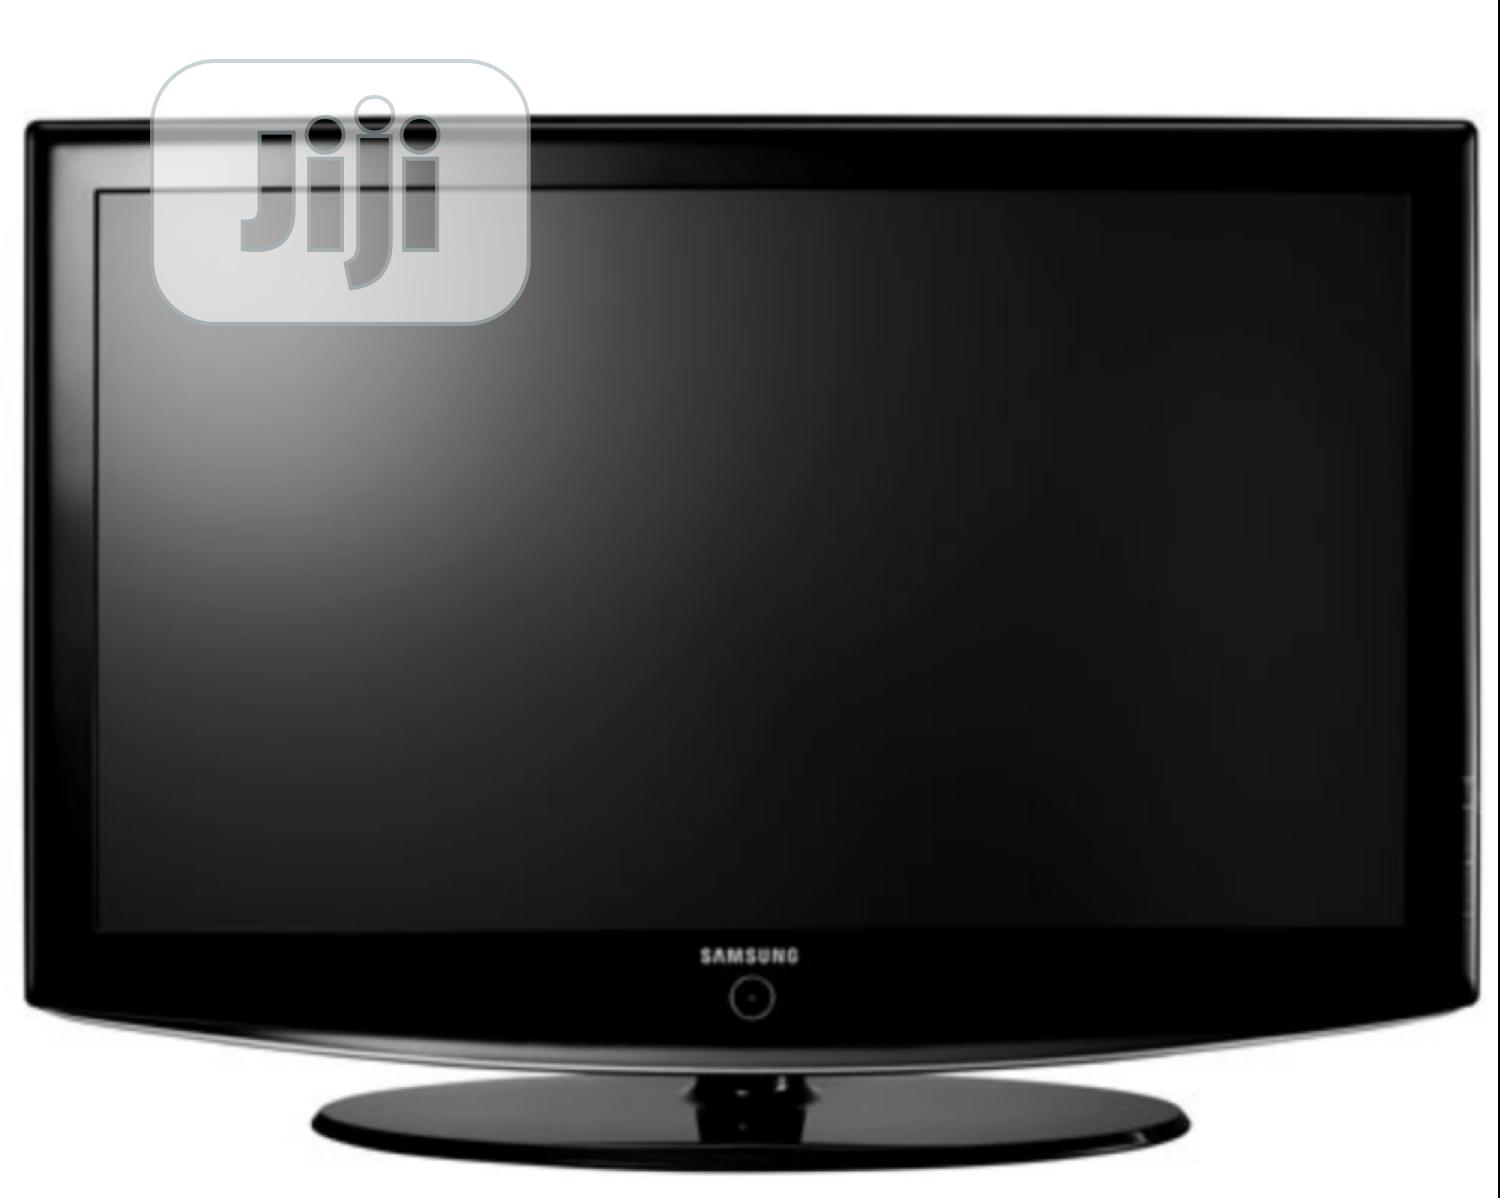 Archive: 32 Inch Samsung LCD TV - Fairly Used